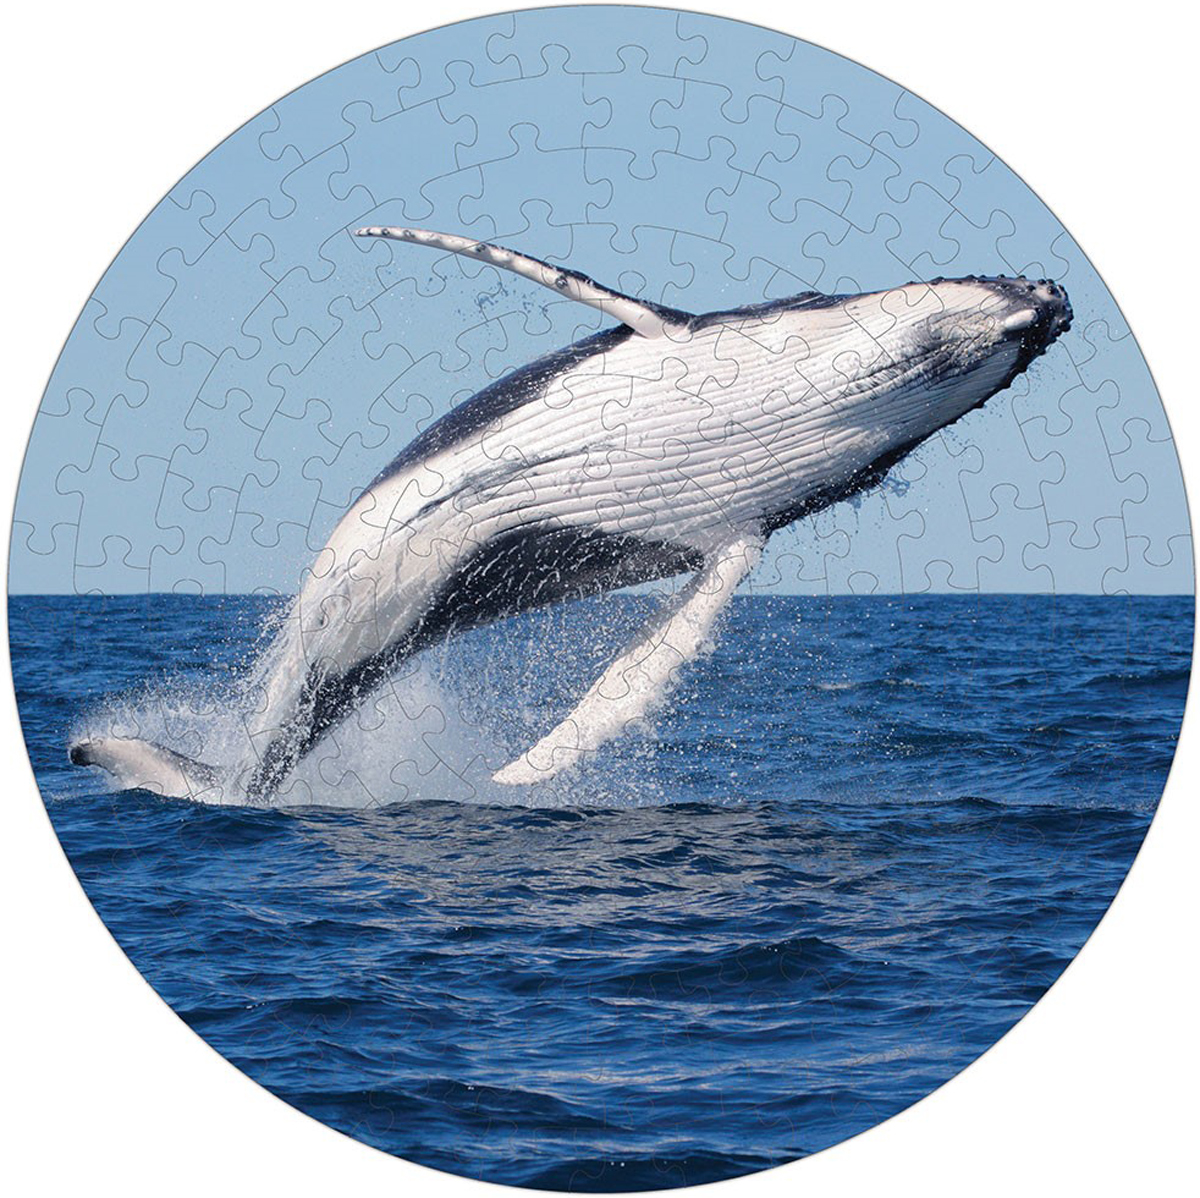 Humpback Whale Puzzle A-Round Animals Jigsaw Puzzle